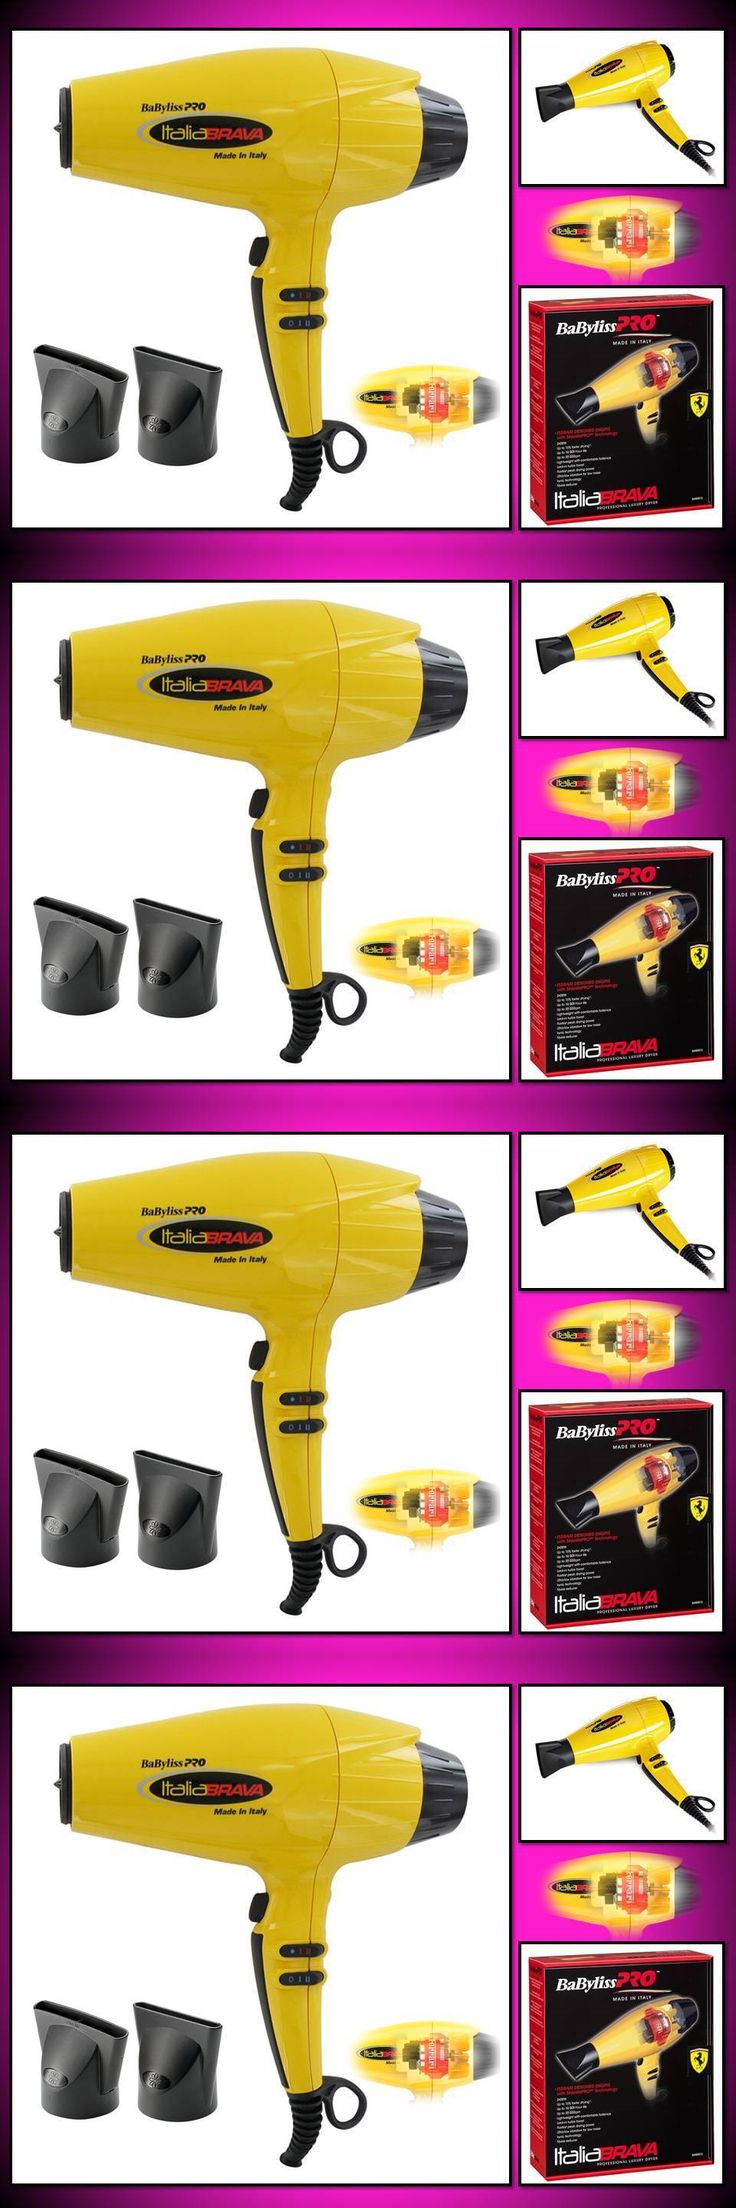 Hair Dryers: Authentic New Babyliss Pro Italia Brava 2000 Watt Yellow Hair Blow Dryer Babfb1 -> BUY IT NOW ONLY: $127.06 on eBay!